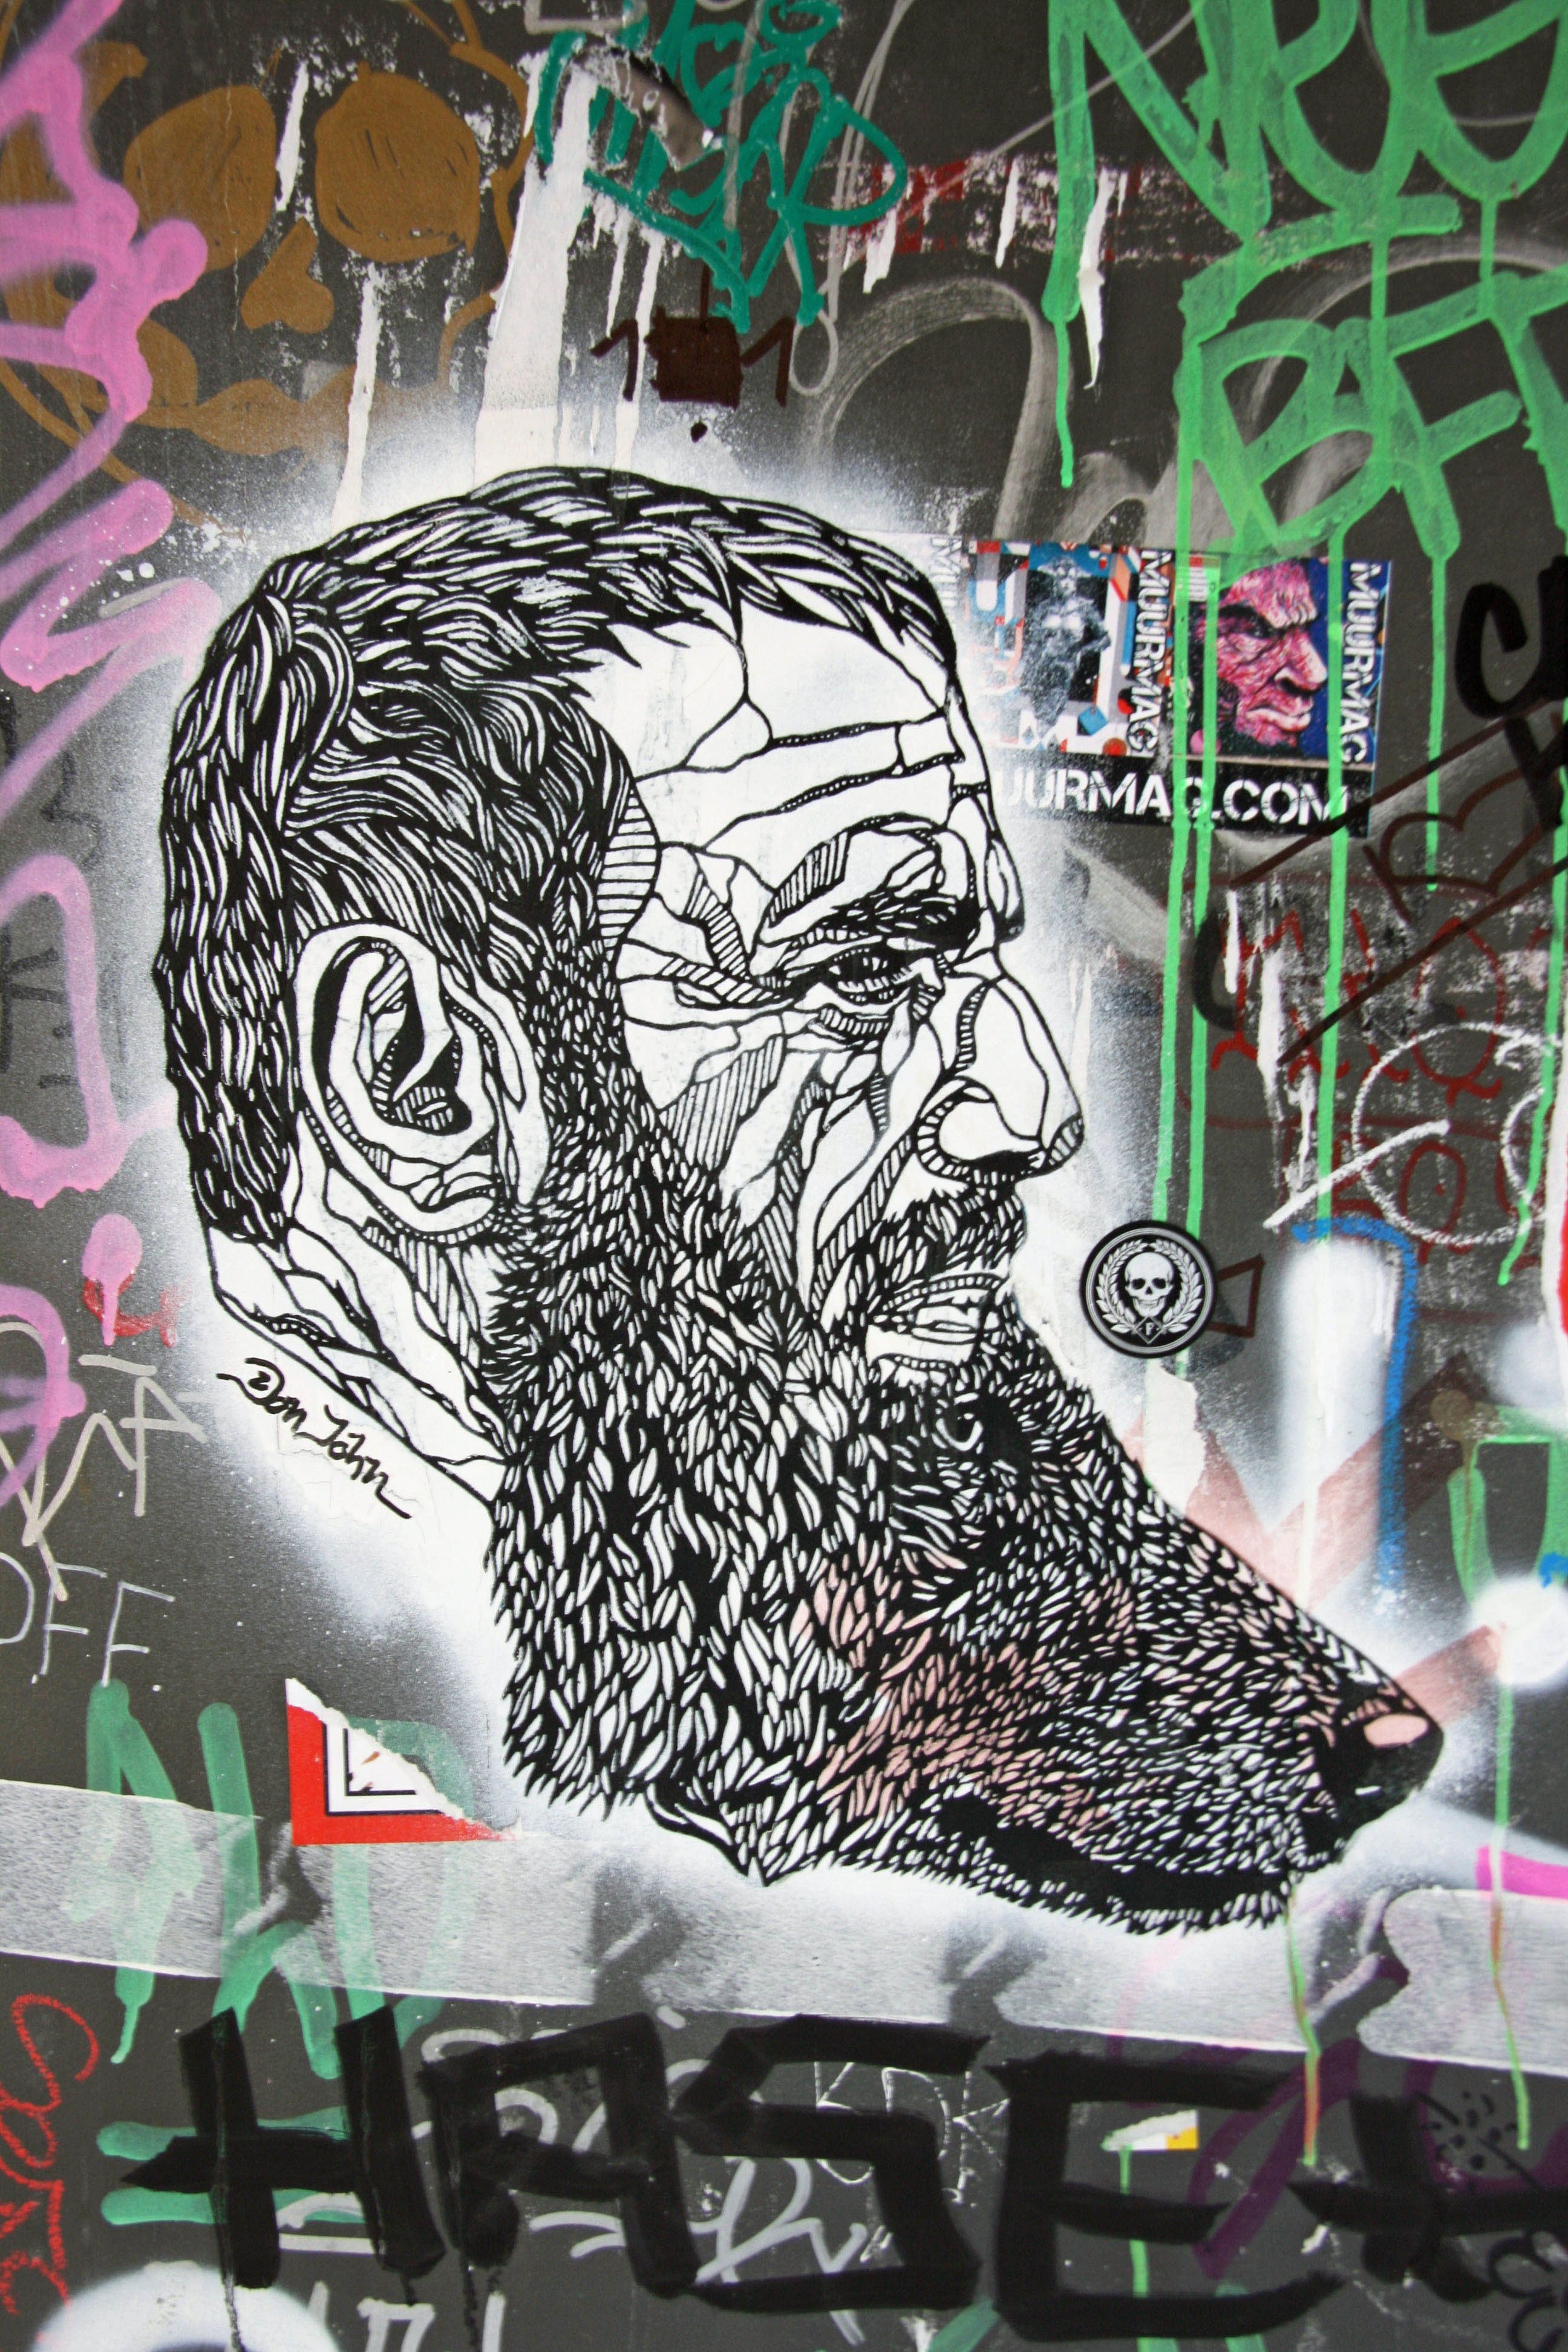 Wolf Beard: Street Art by Don John in Berlin